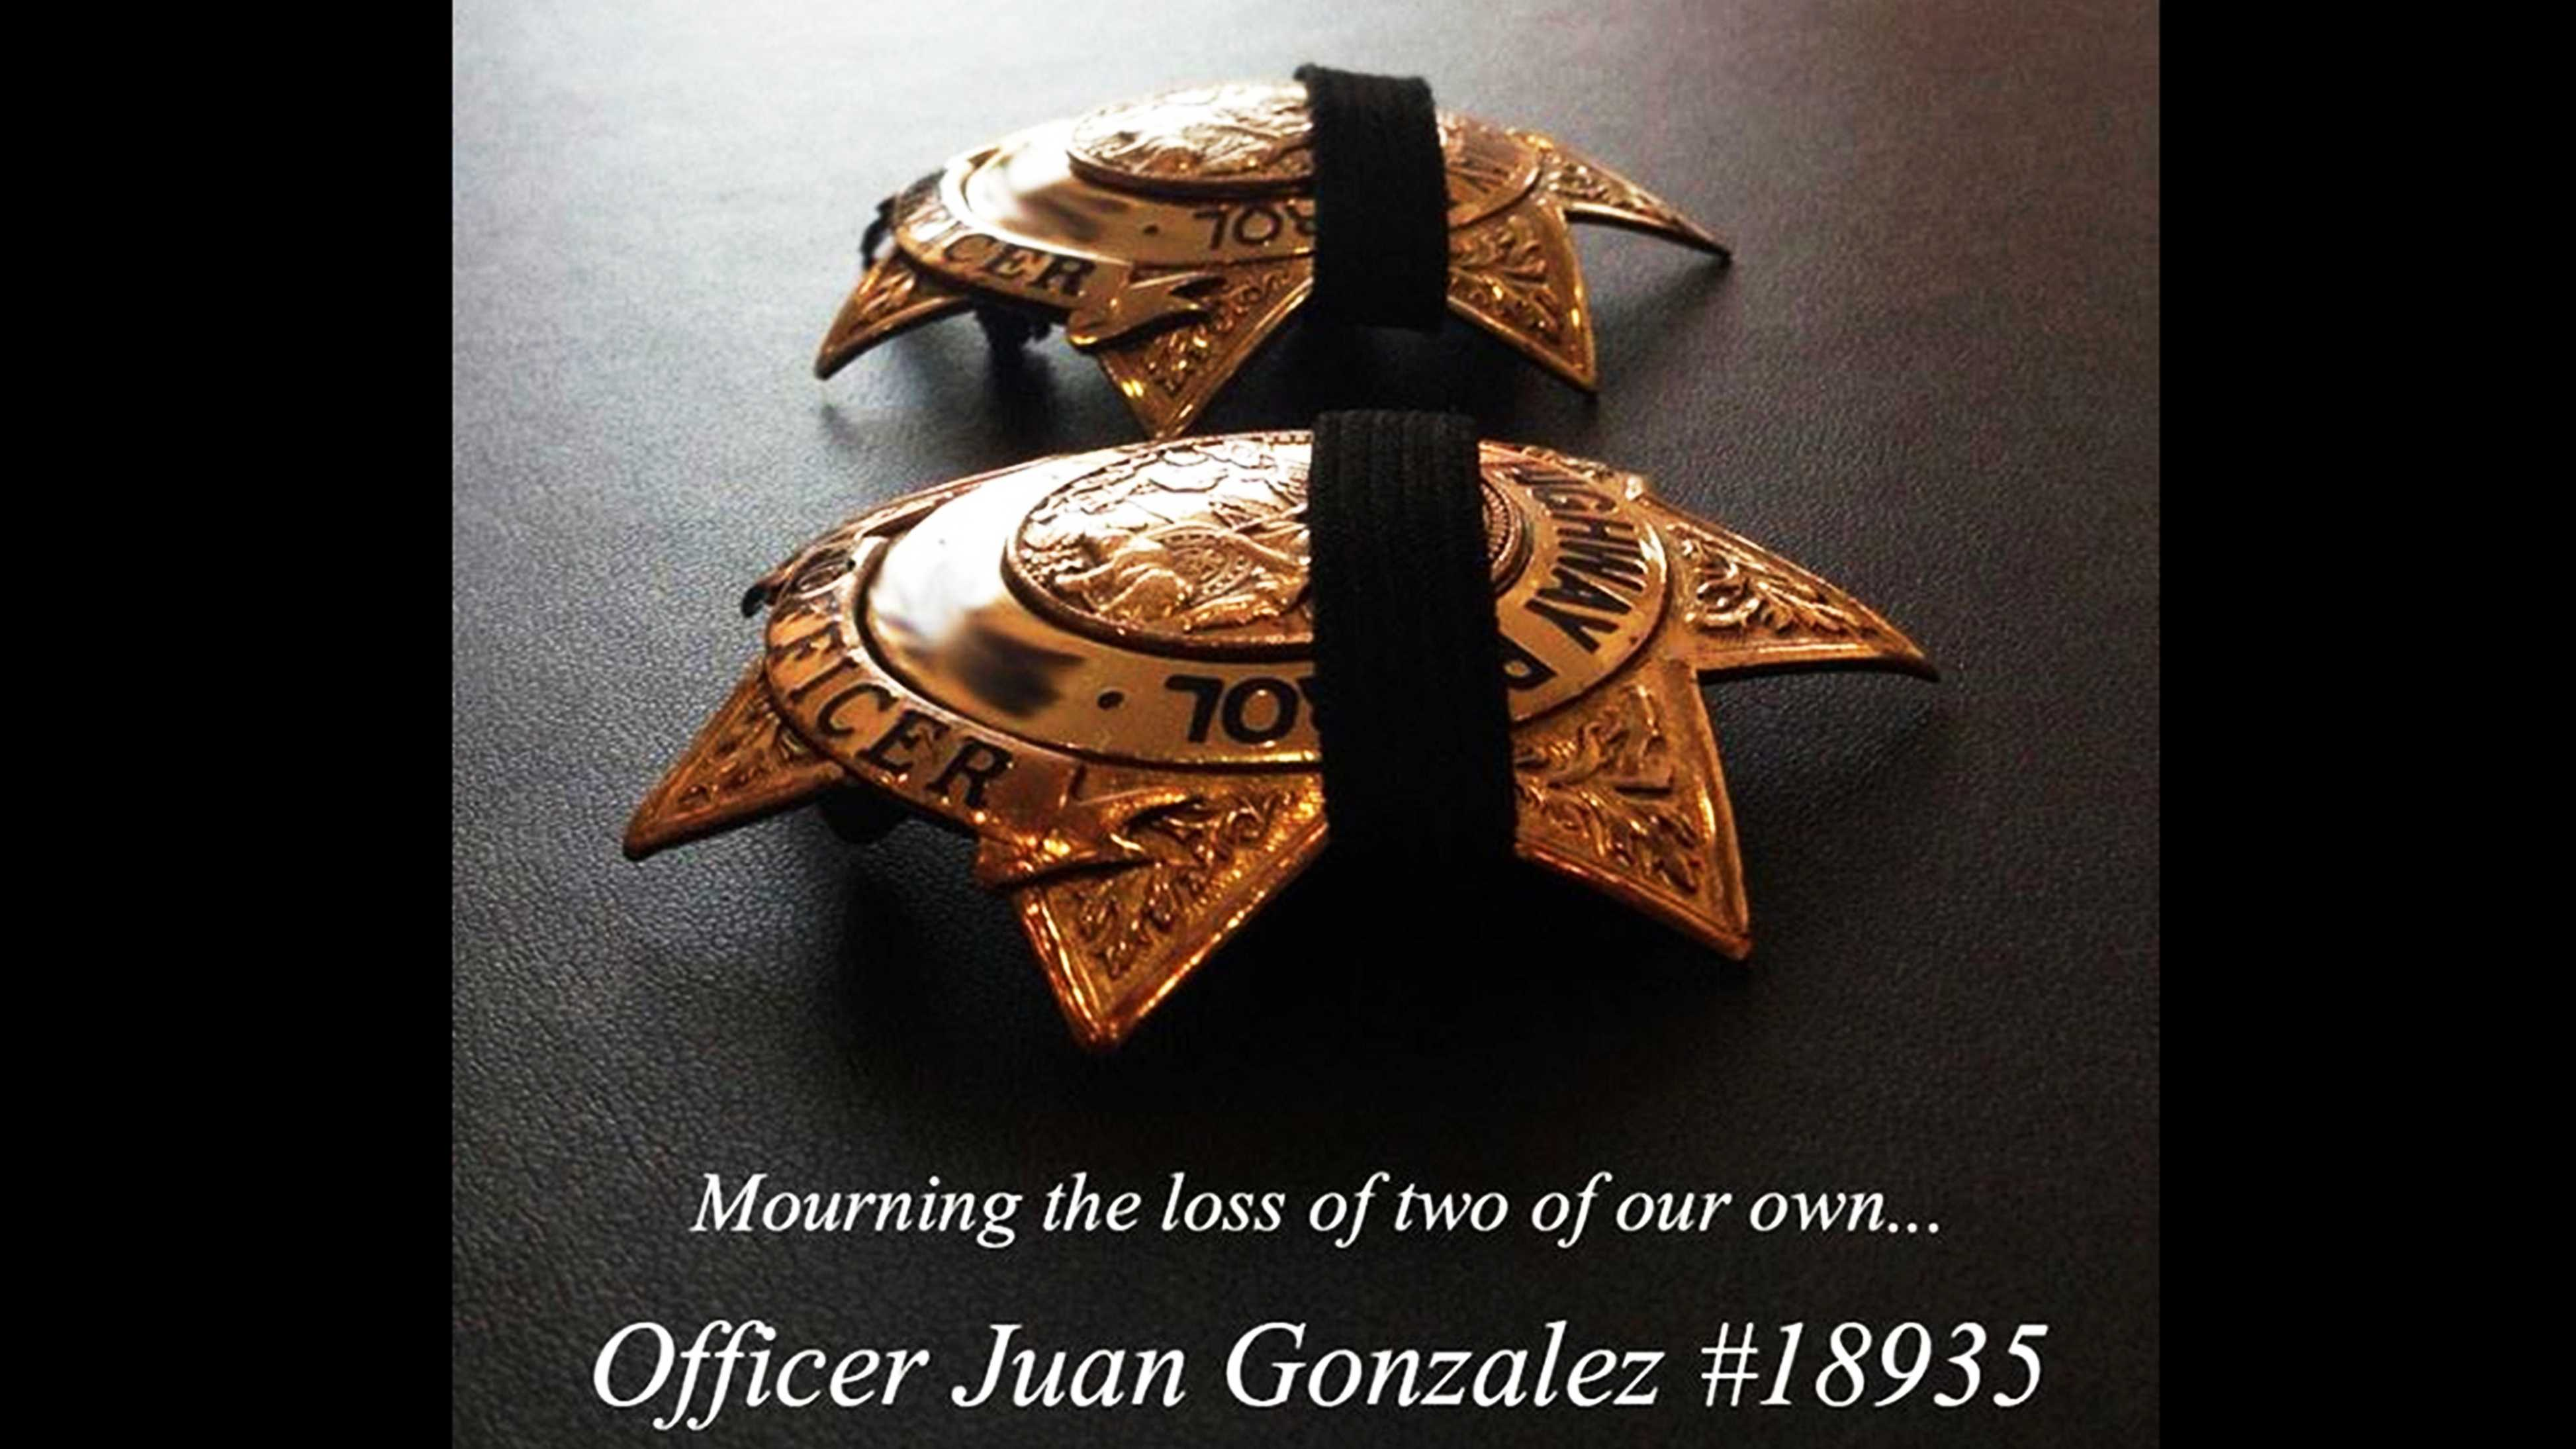 chp brian law and juan gonzalez.jpg (1)